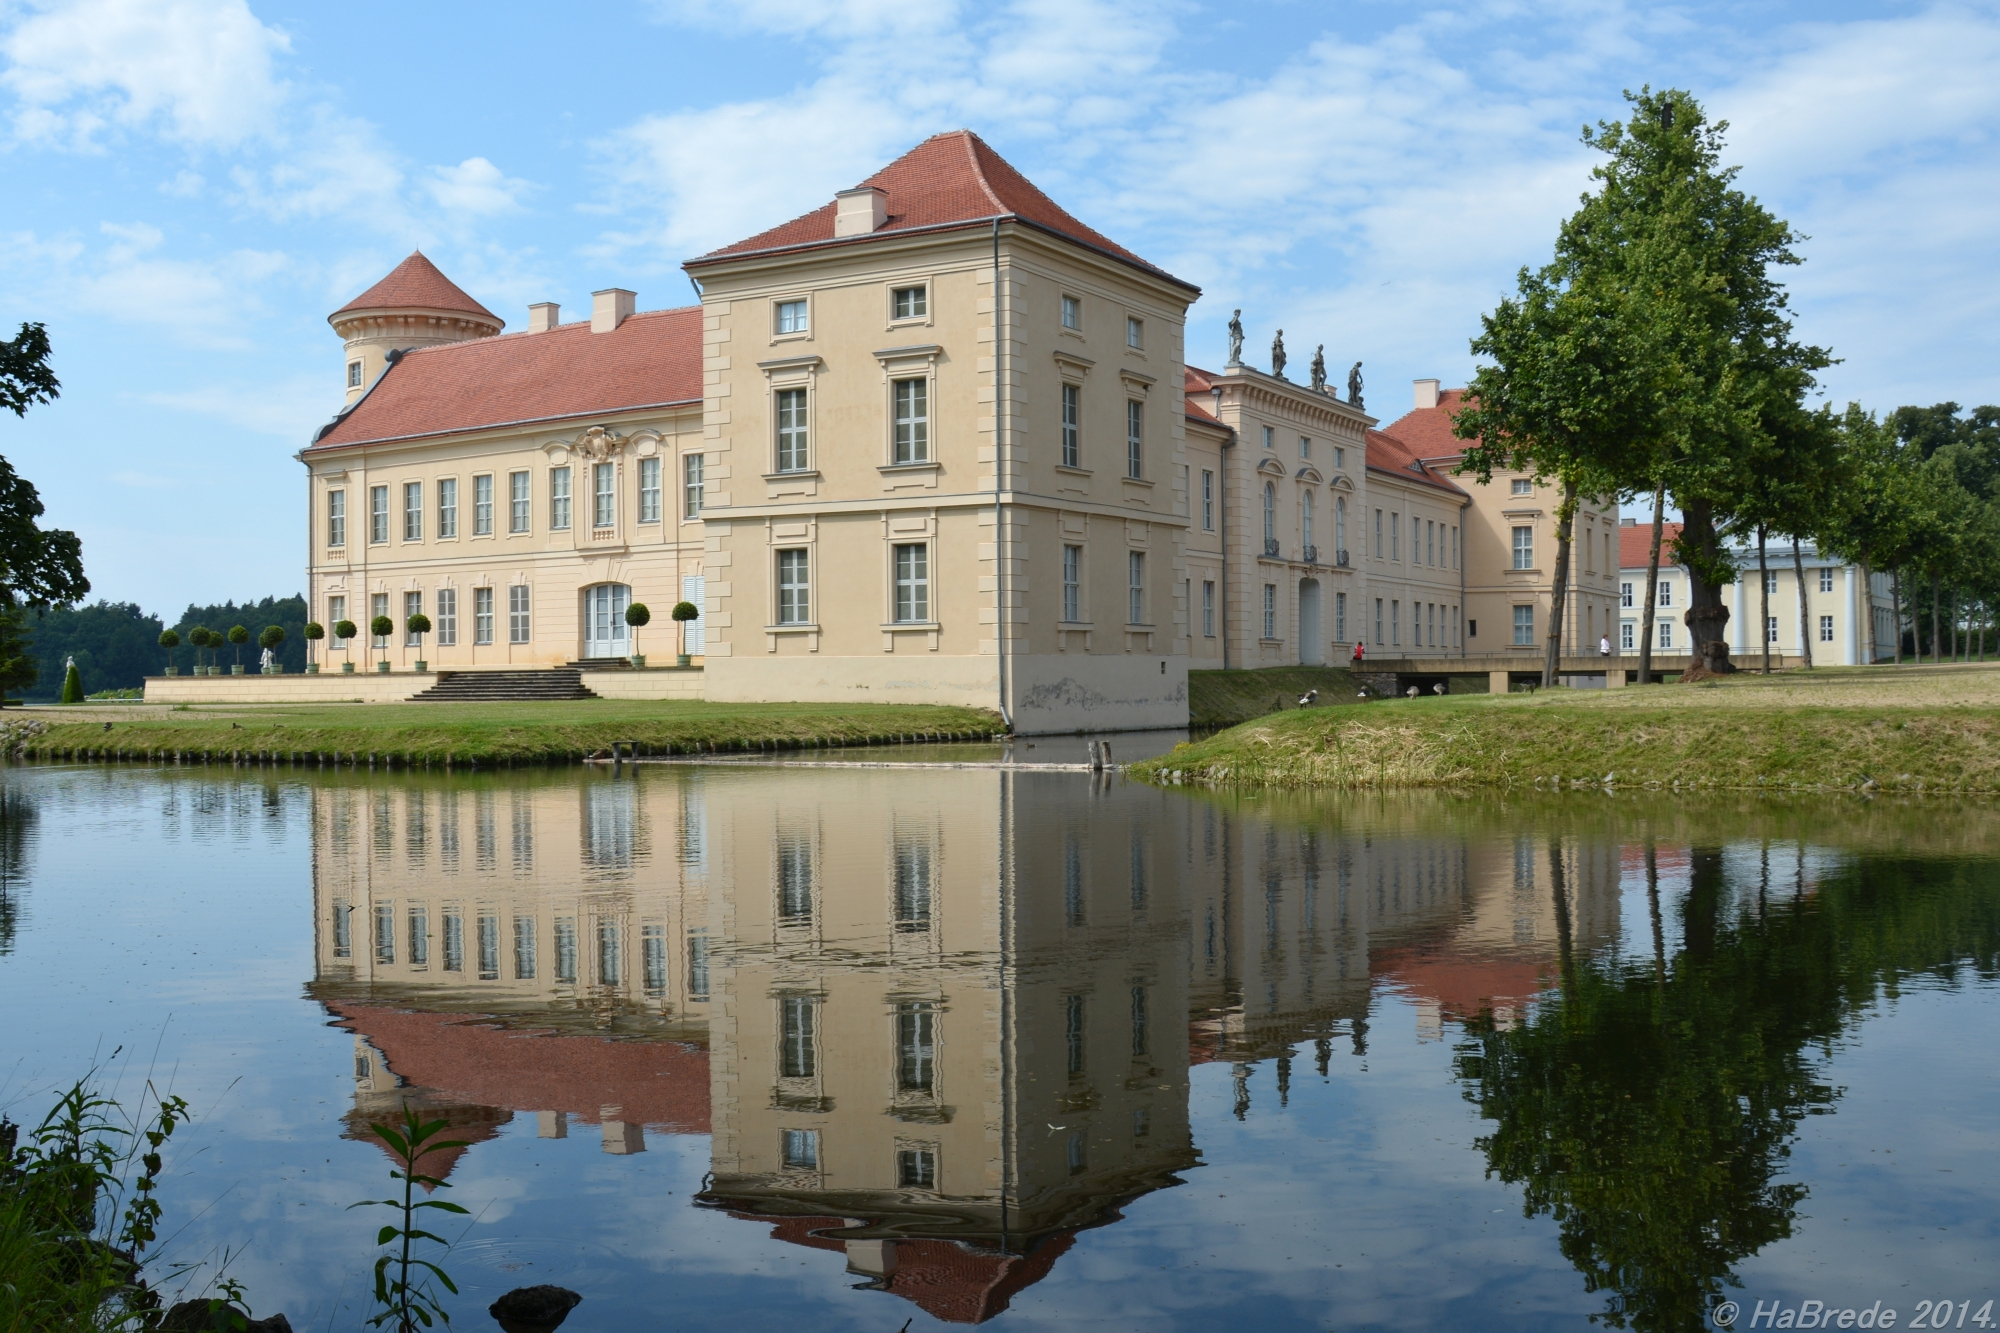 Another View of castle rheinsberg, Germany